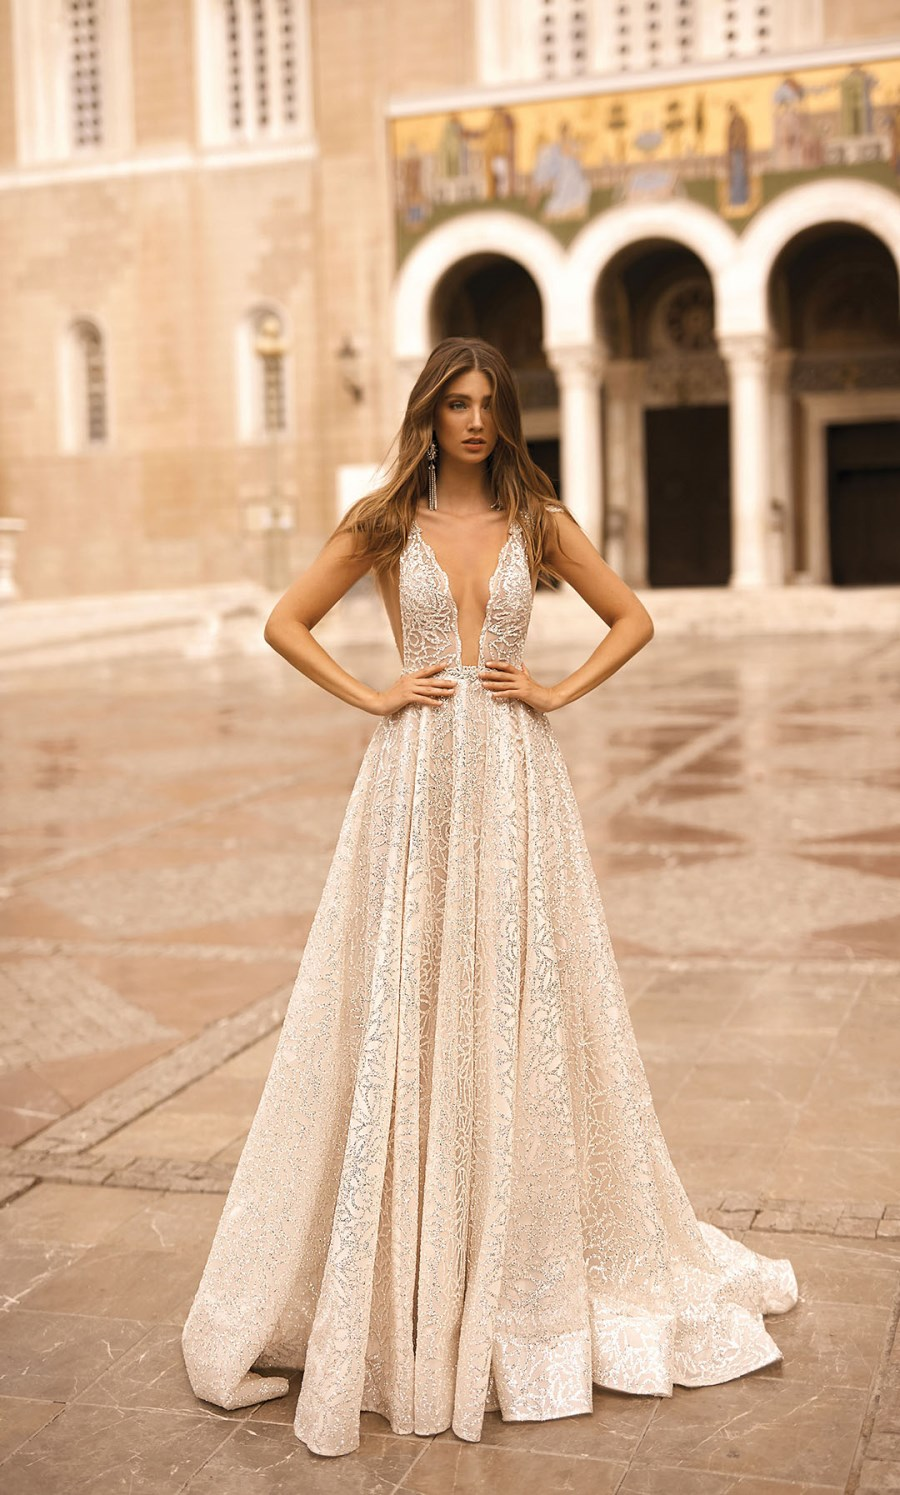 berta-wedding-dress-2019-1 (13)_1